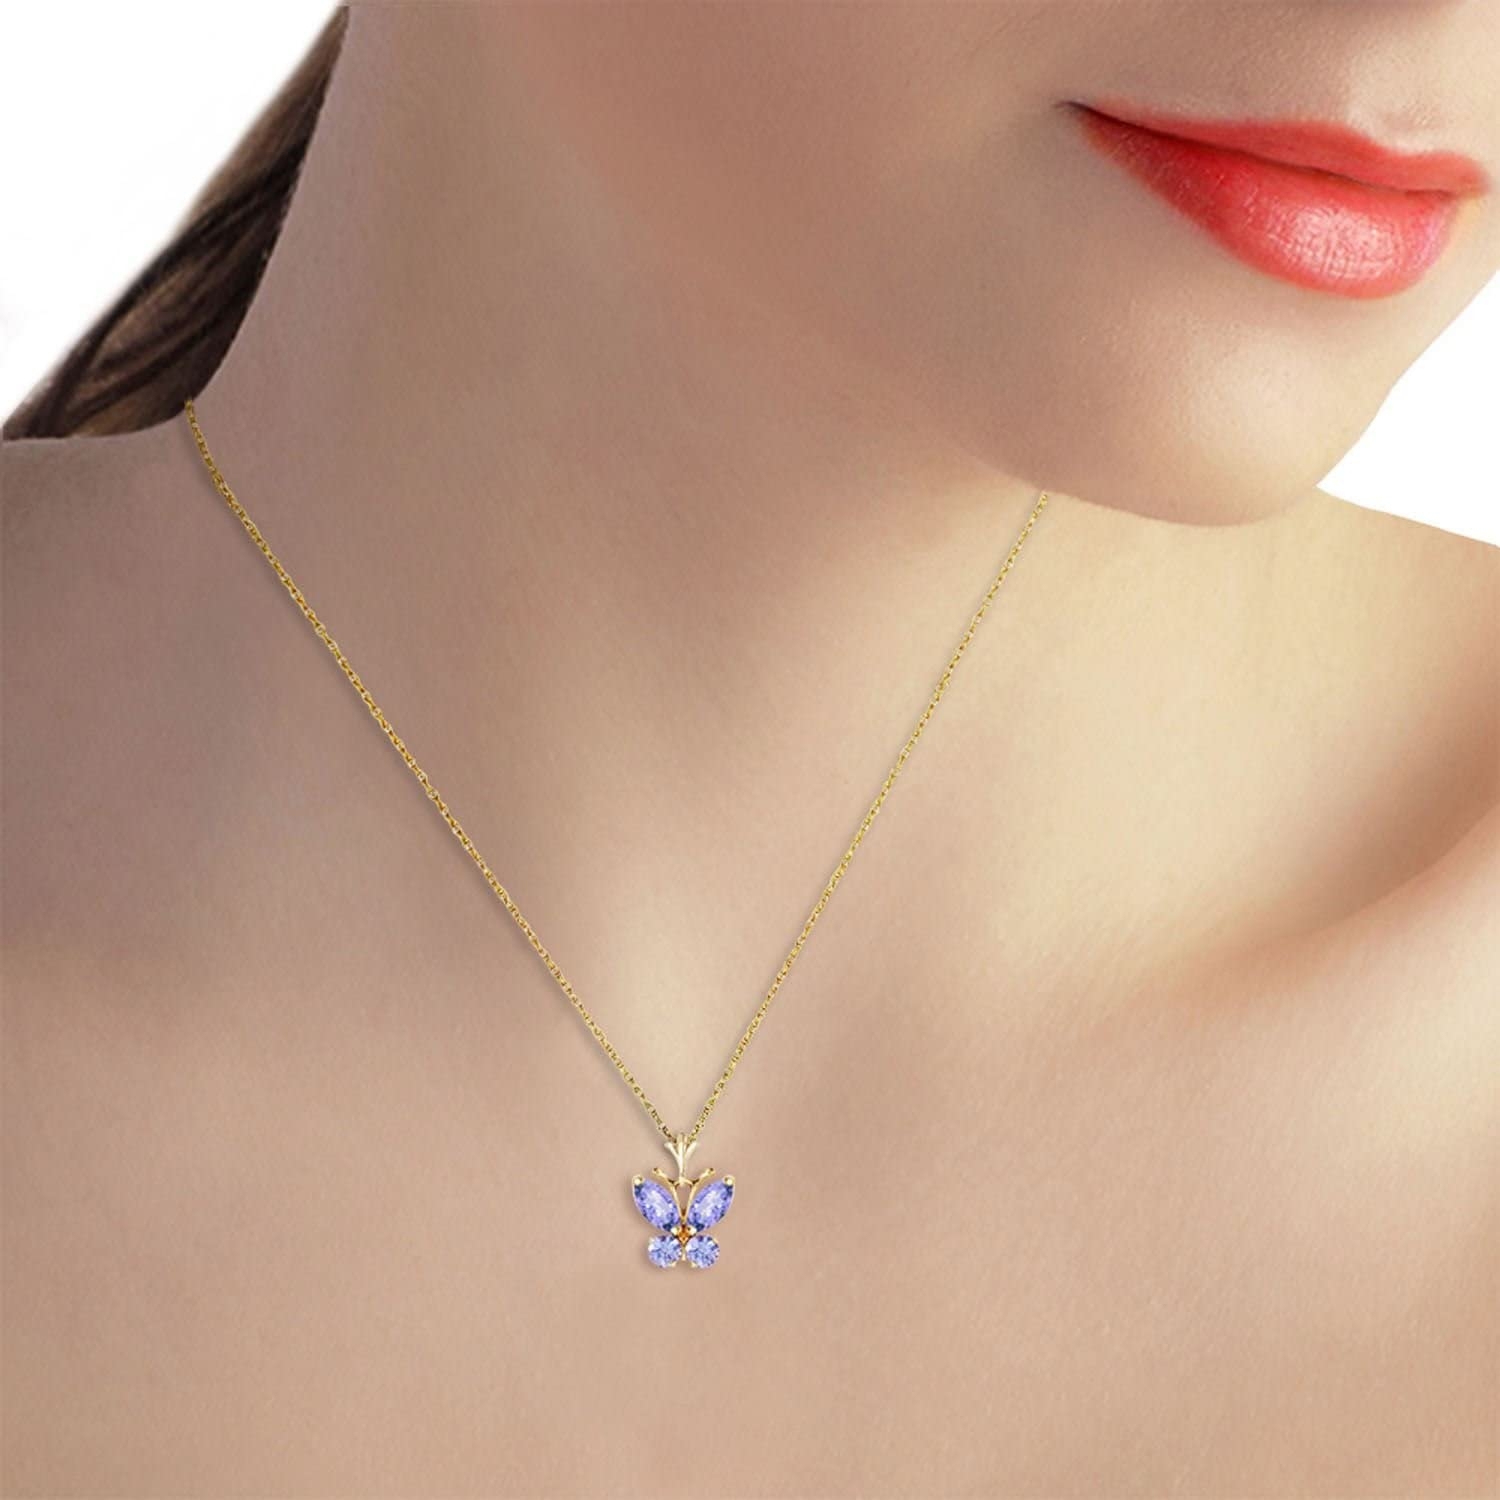 ALARRI 0.6 Carat 14K Solid Gold Butterfly Necklace Tanzanite with 22 Inch Chain Length